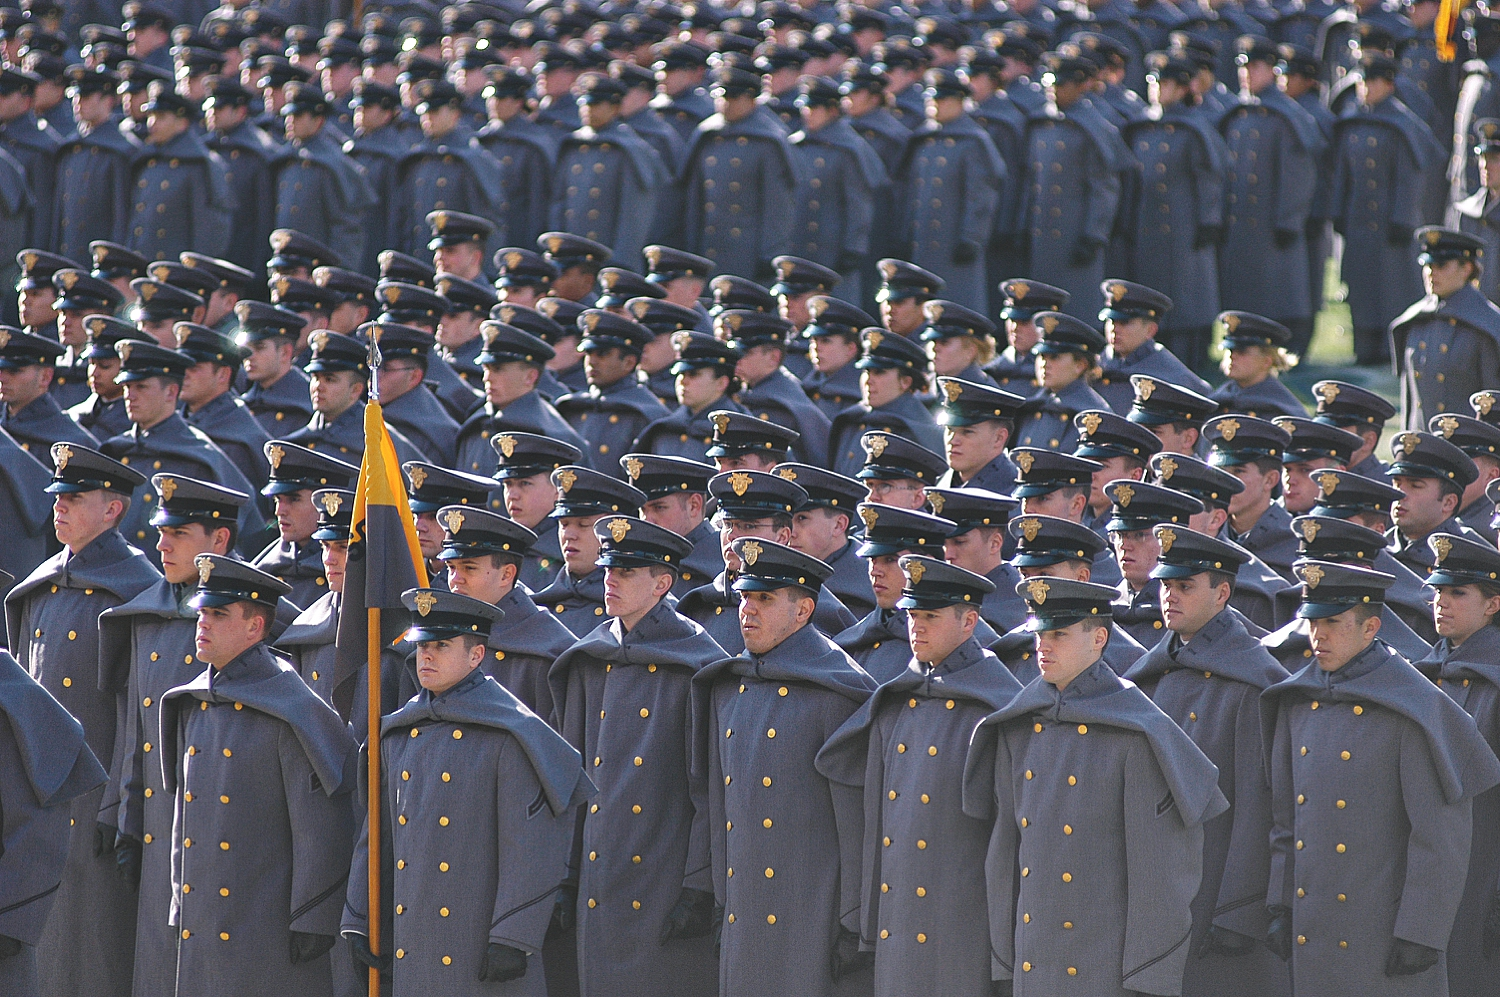 6-cadets-from-west-point-marching-on-army-navy-field.jpg